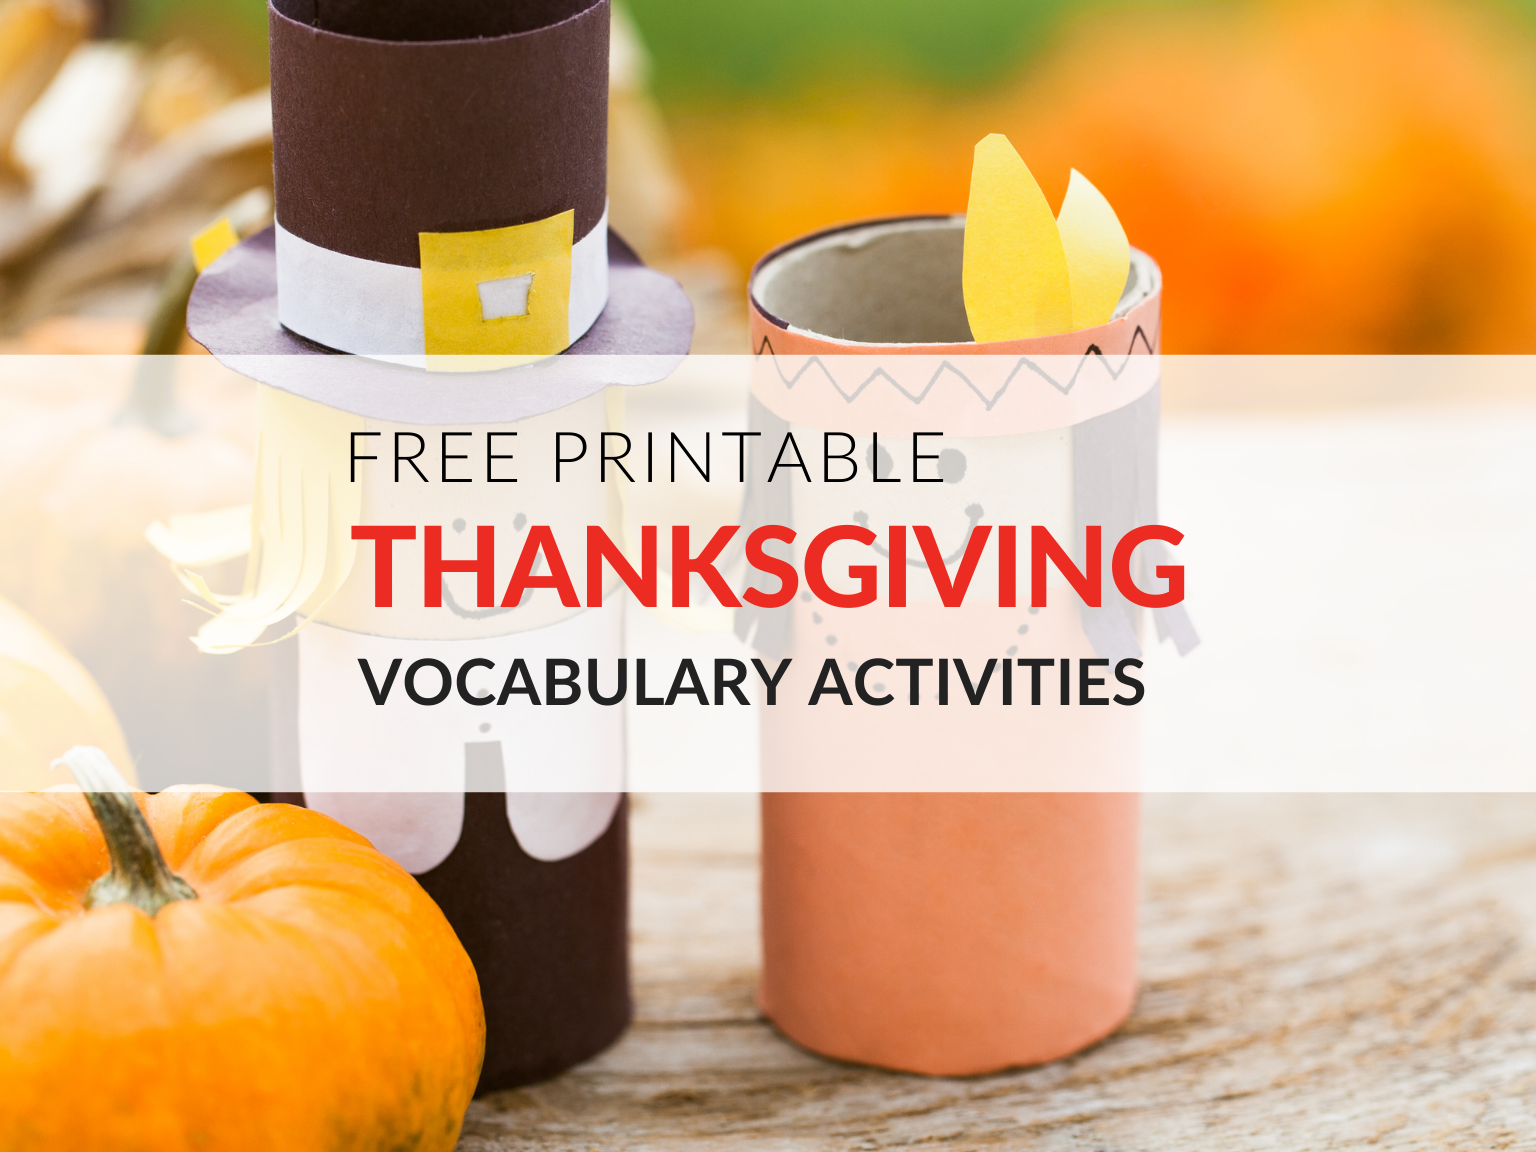 Celebrate the Thanksgiving season in the classroom with vocabulary words! Like most holidays, the festivities surrounding Thanksgiving give teachers an opportunity to add excitement to routine classroom assignments. Use these free Thanksgiving vocabulary printables to engage and inspire your students.